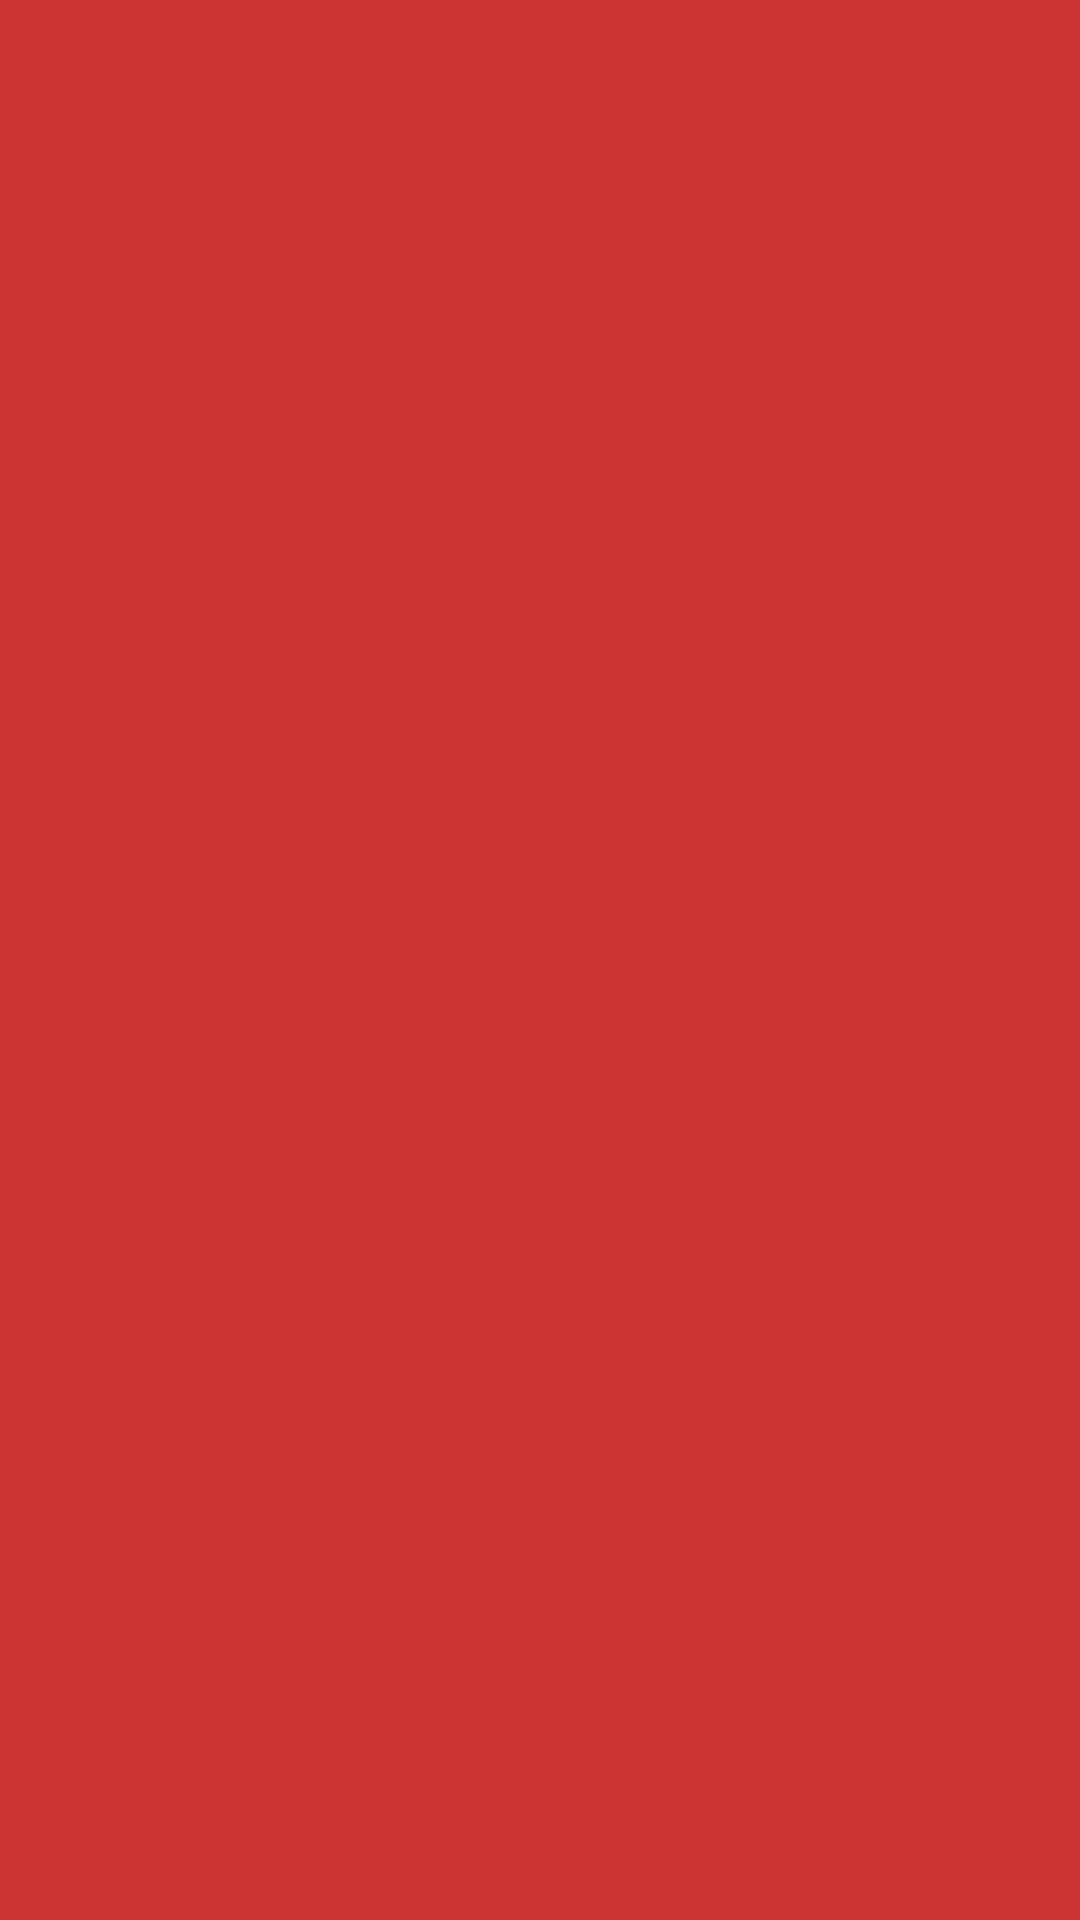 1080x1920 Persian Red Solid Color Background